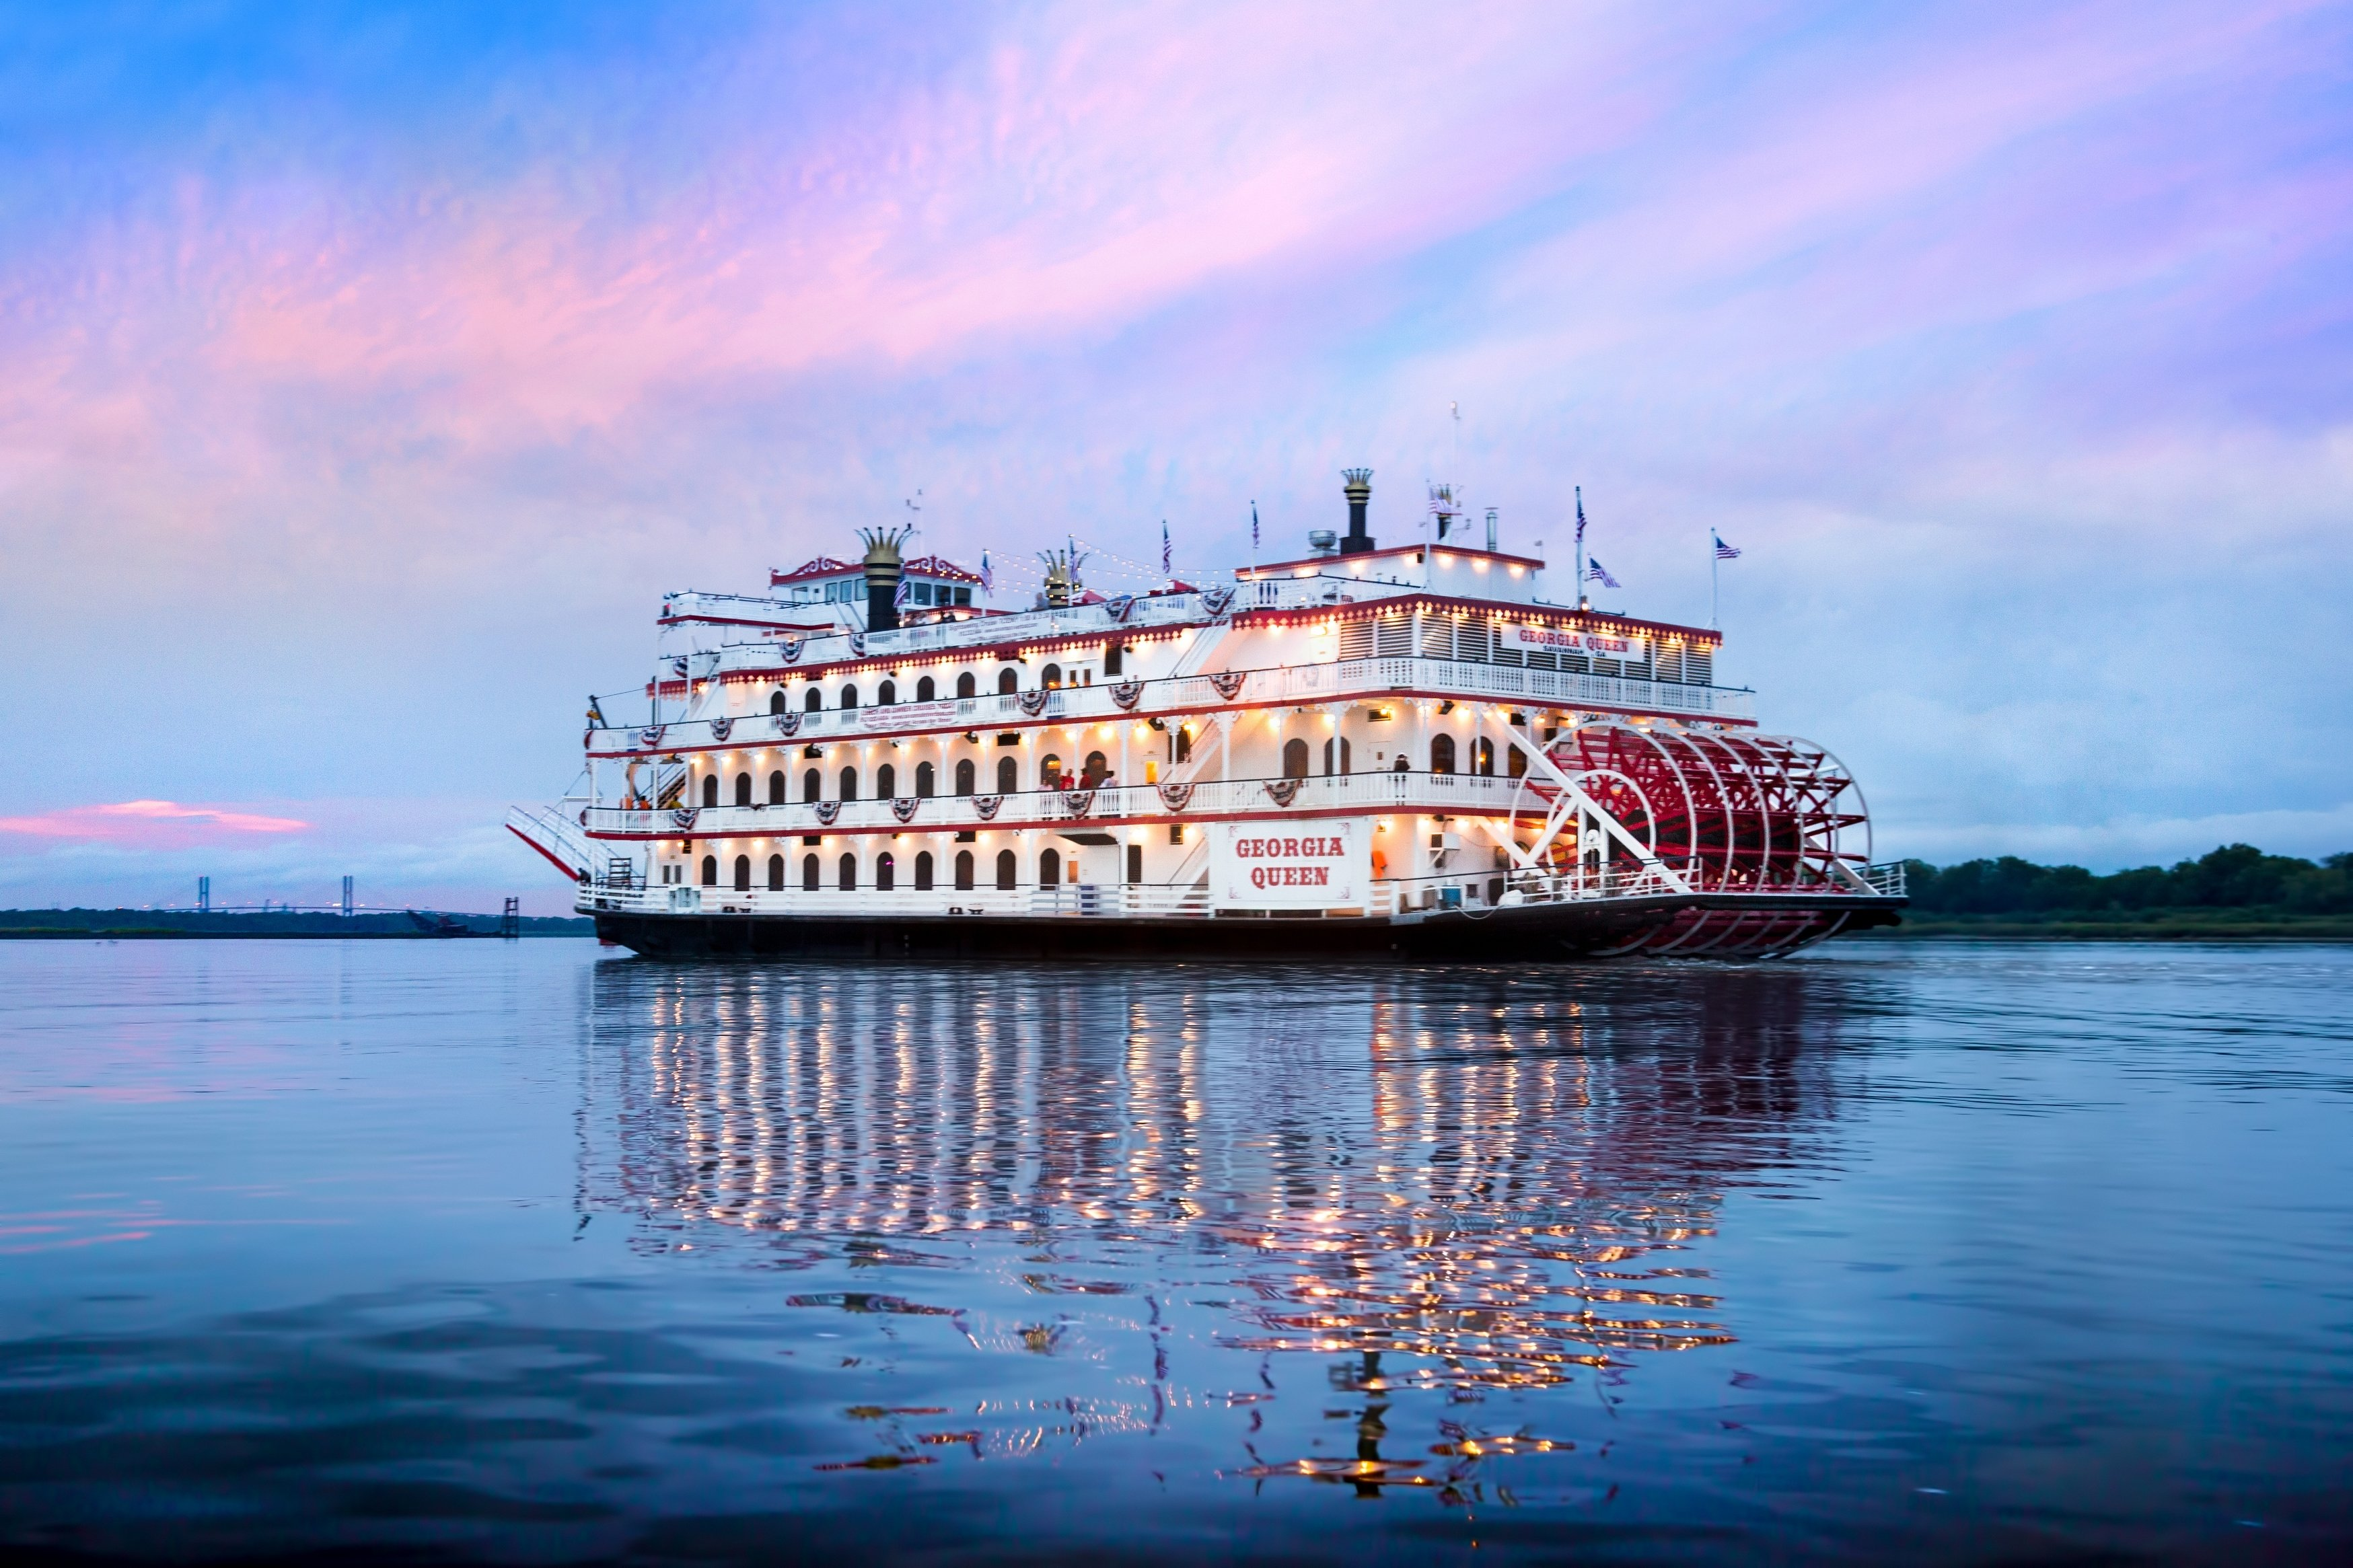 Sunsets are breathtaking while slowly cruising along the Savannah River!